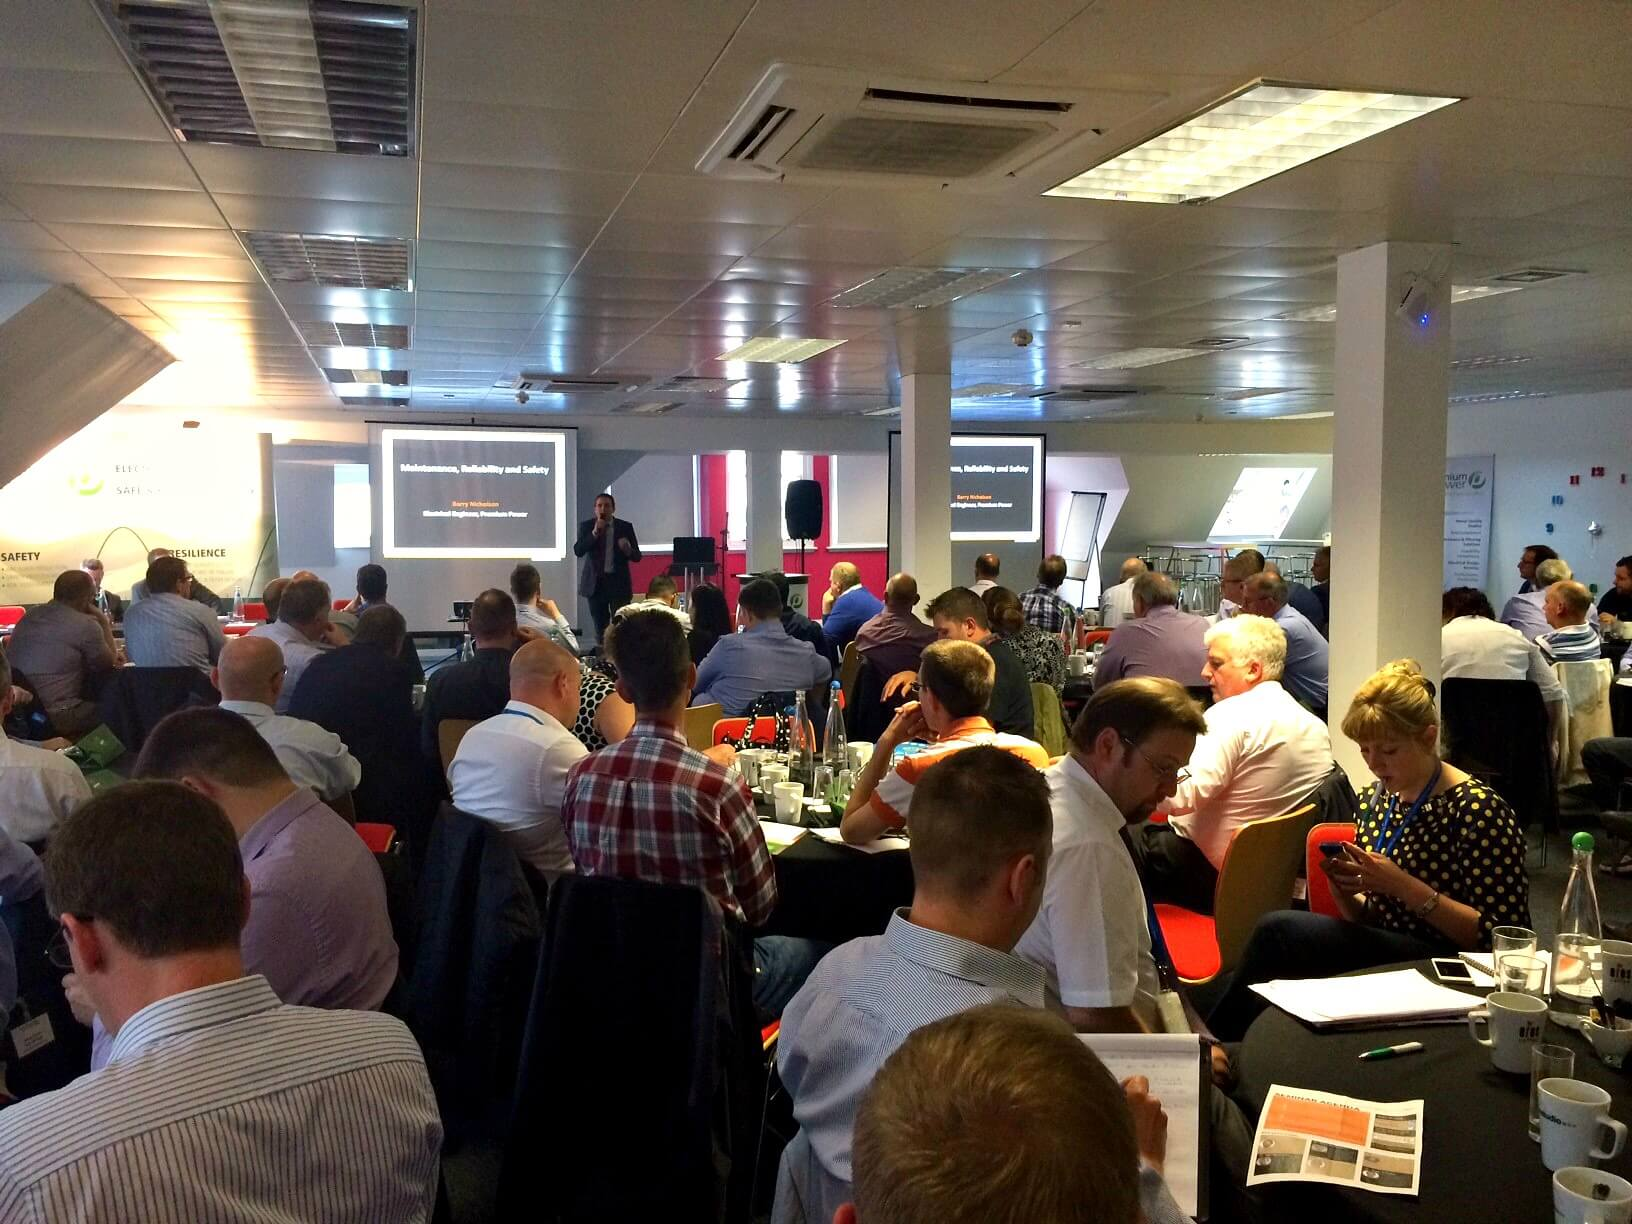 Premium Power present to full house in Birmingham